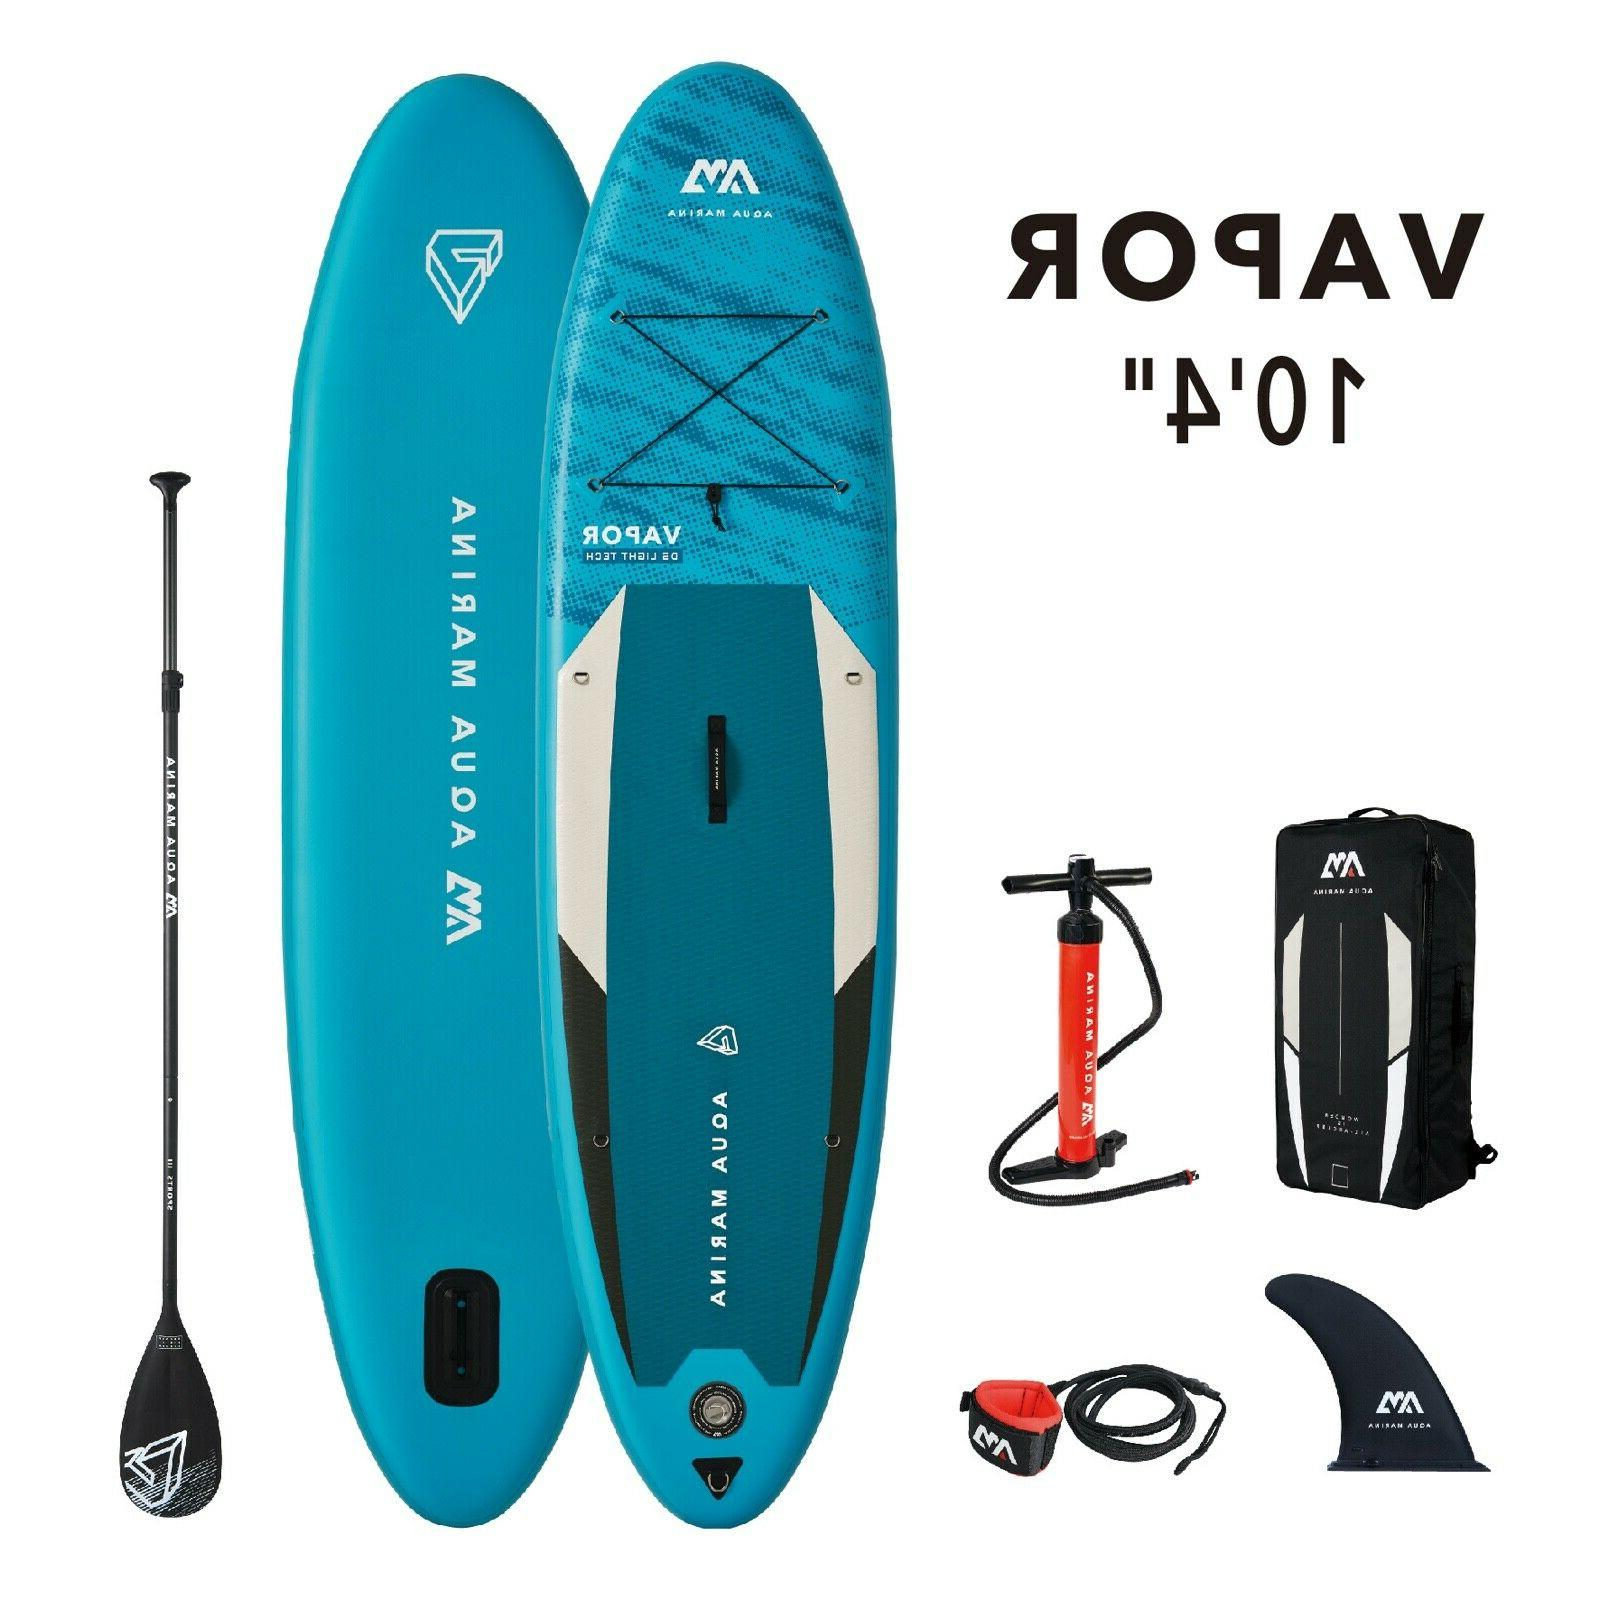 2021 vapor inflatable stand up paddleboard 10